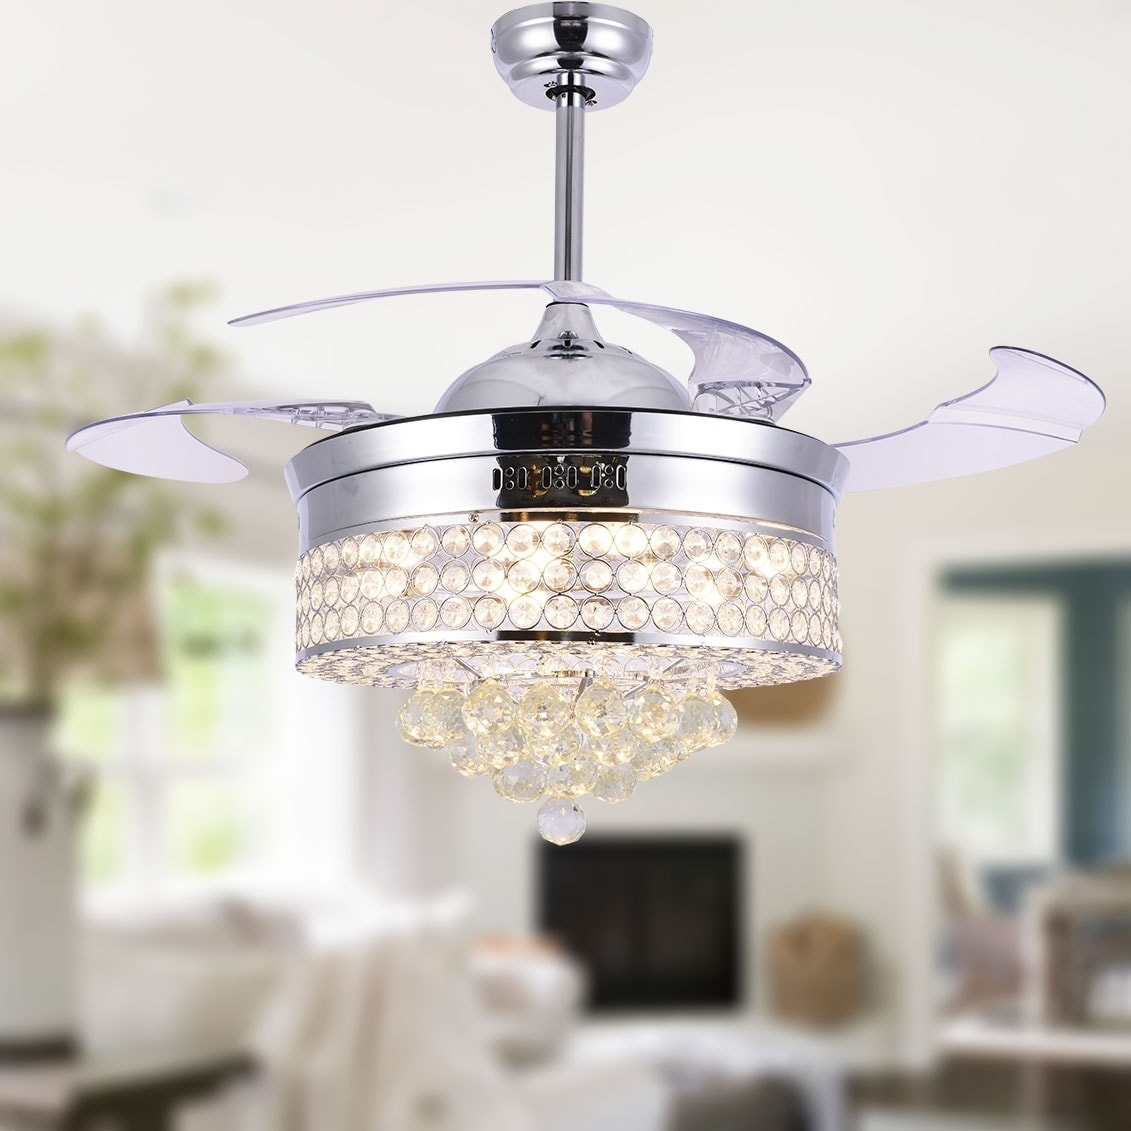 Shop Black Friday Deals On Unique Caged Ceiling Fan With Remote Led Light Retractable Blades 42 Inches 42 Inches Overstock 28174122